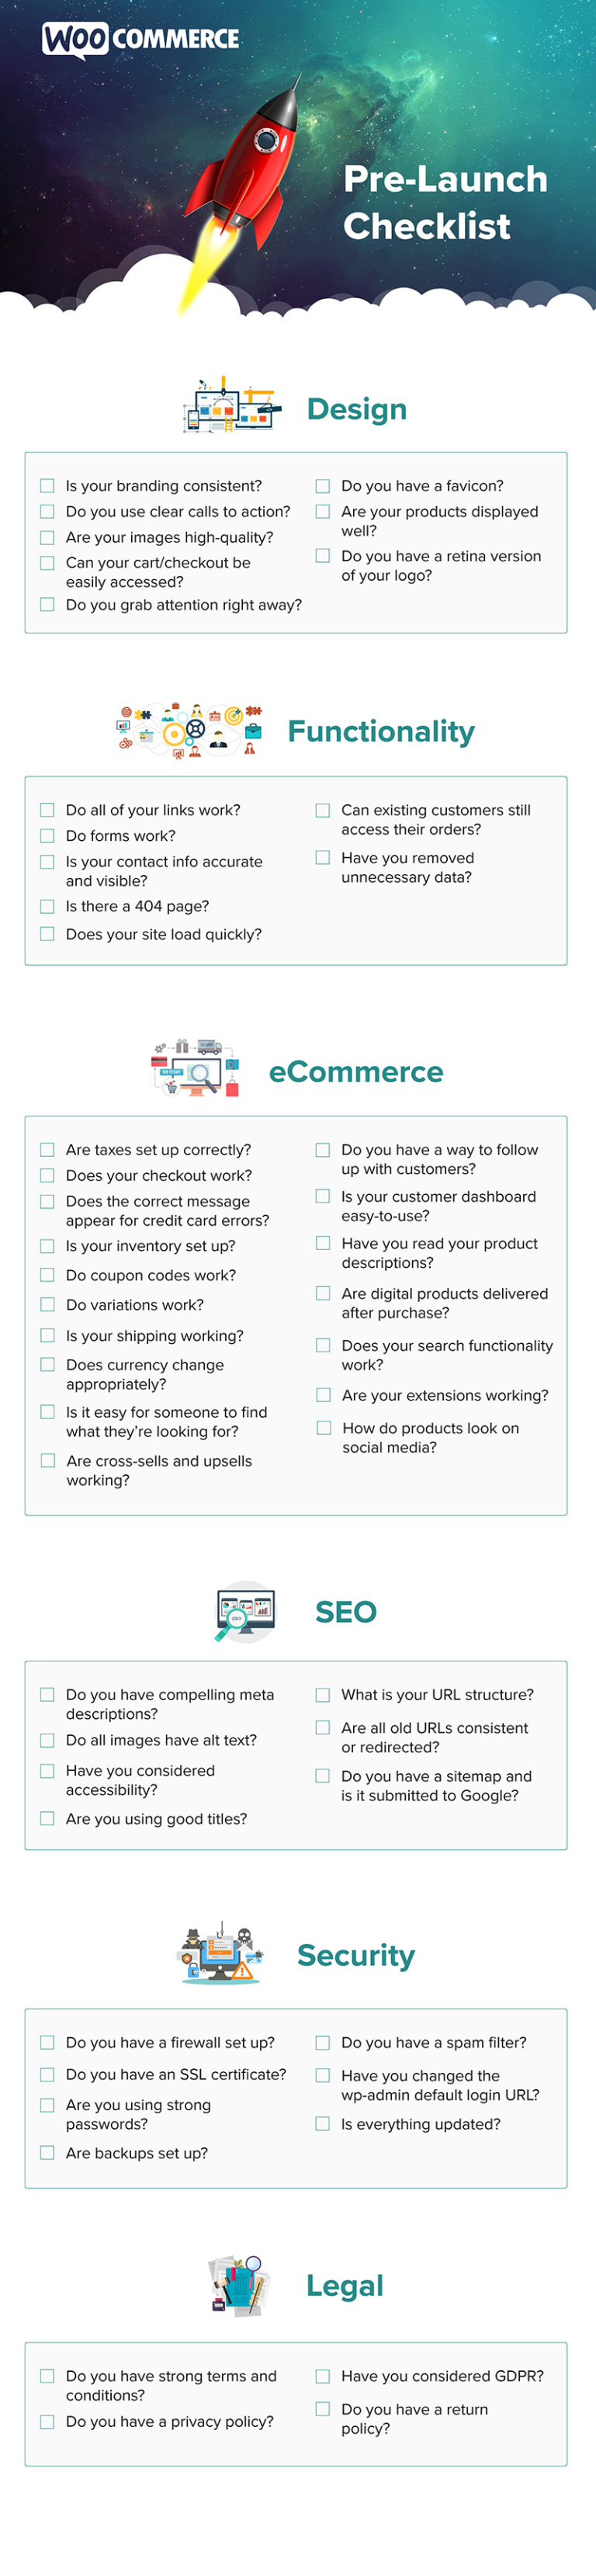 Ecommerce Checklist 49 Things To Check Before Launching Your Online Shop In 2020 Infographic Marketing Start Online Business Business Template